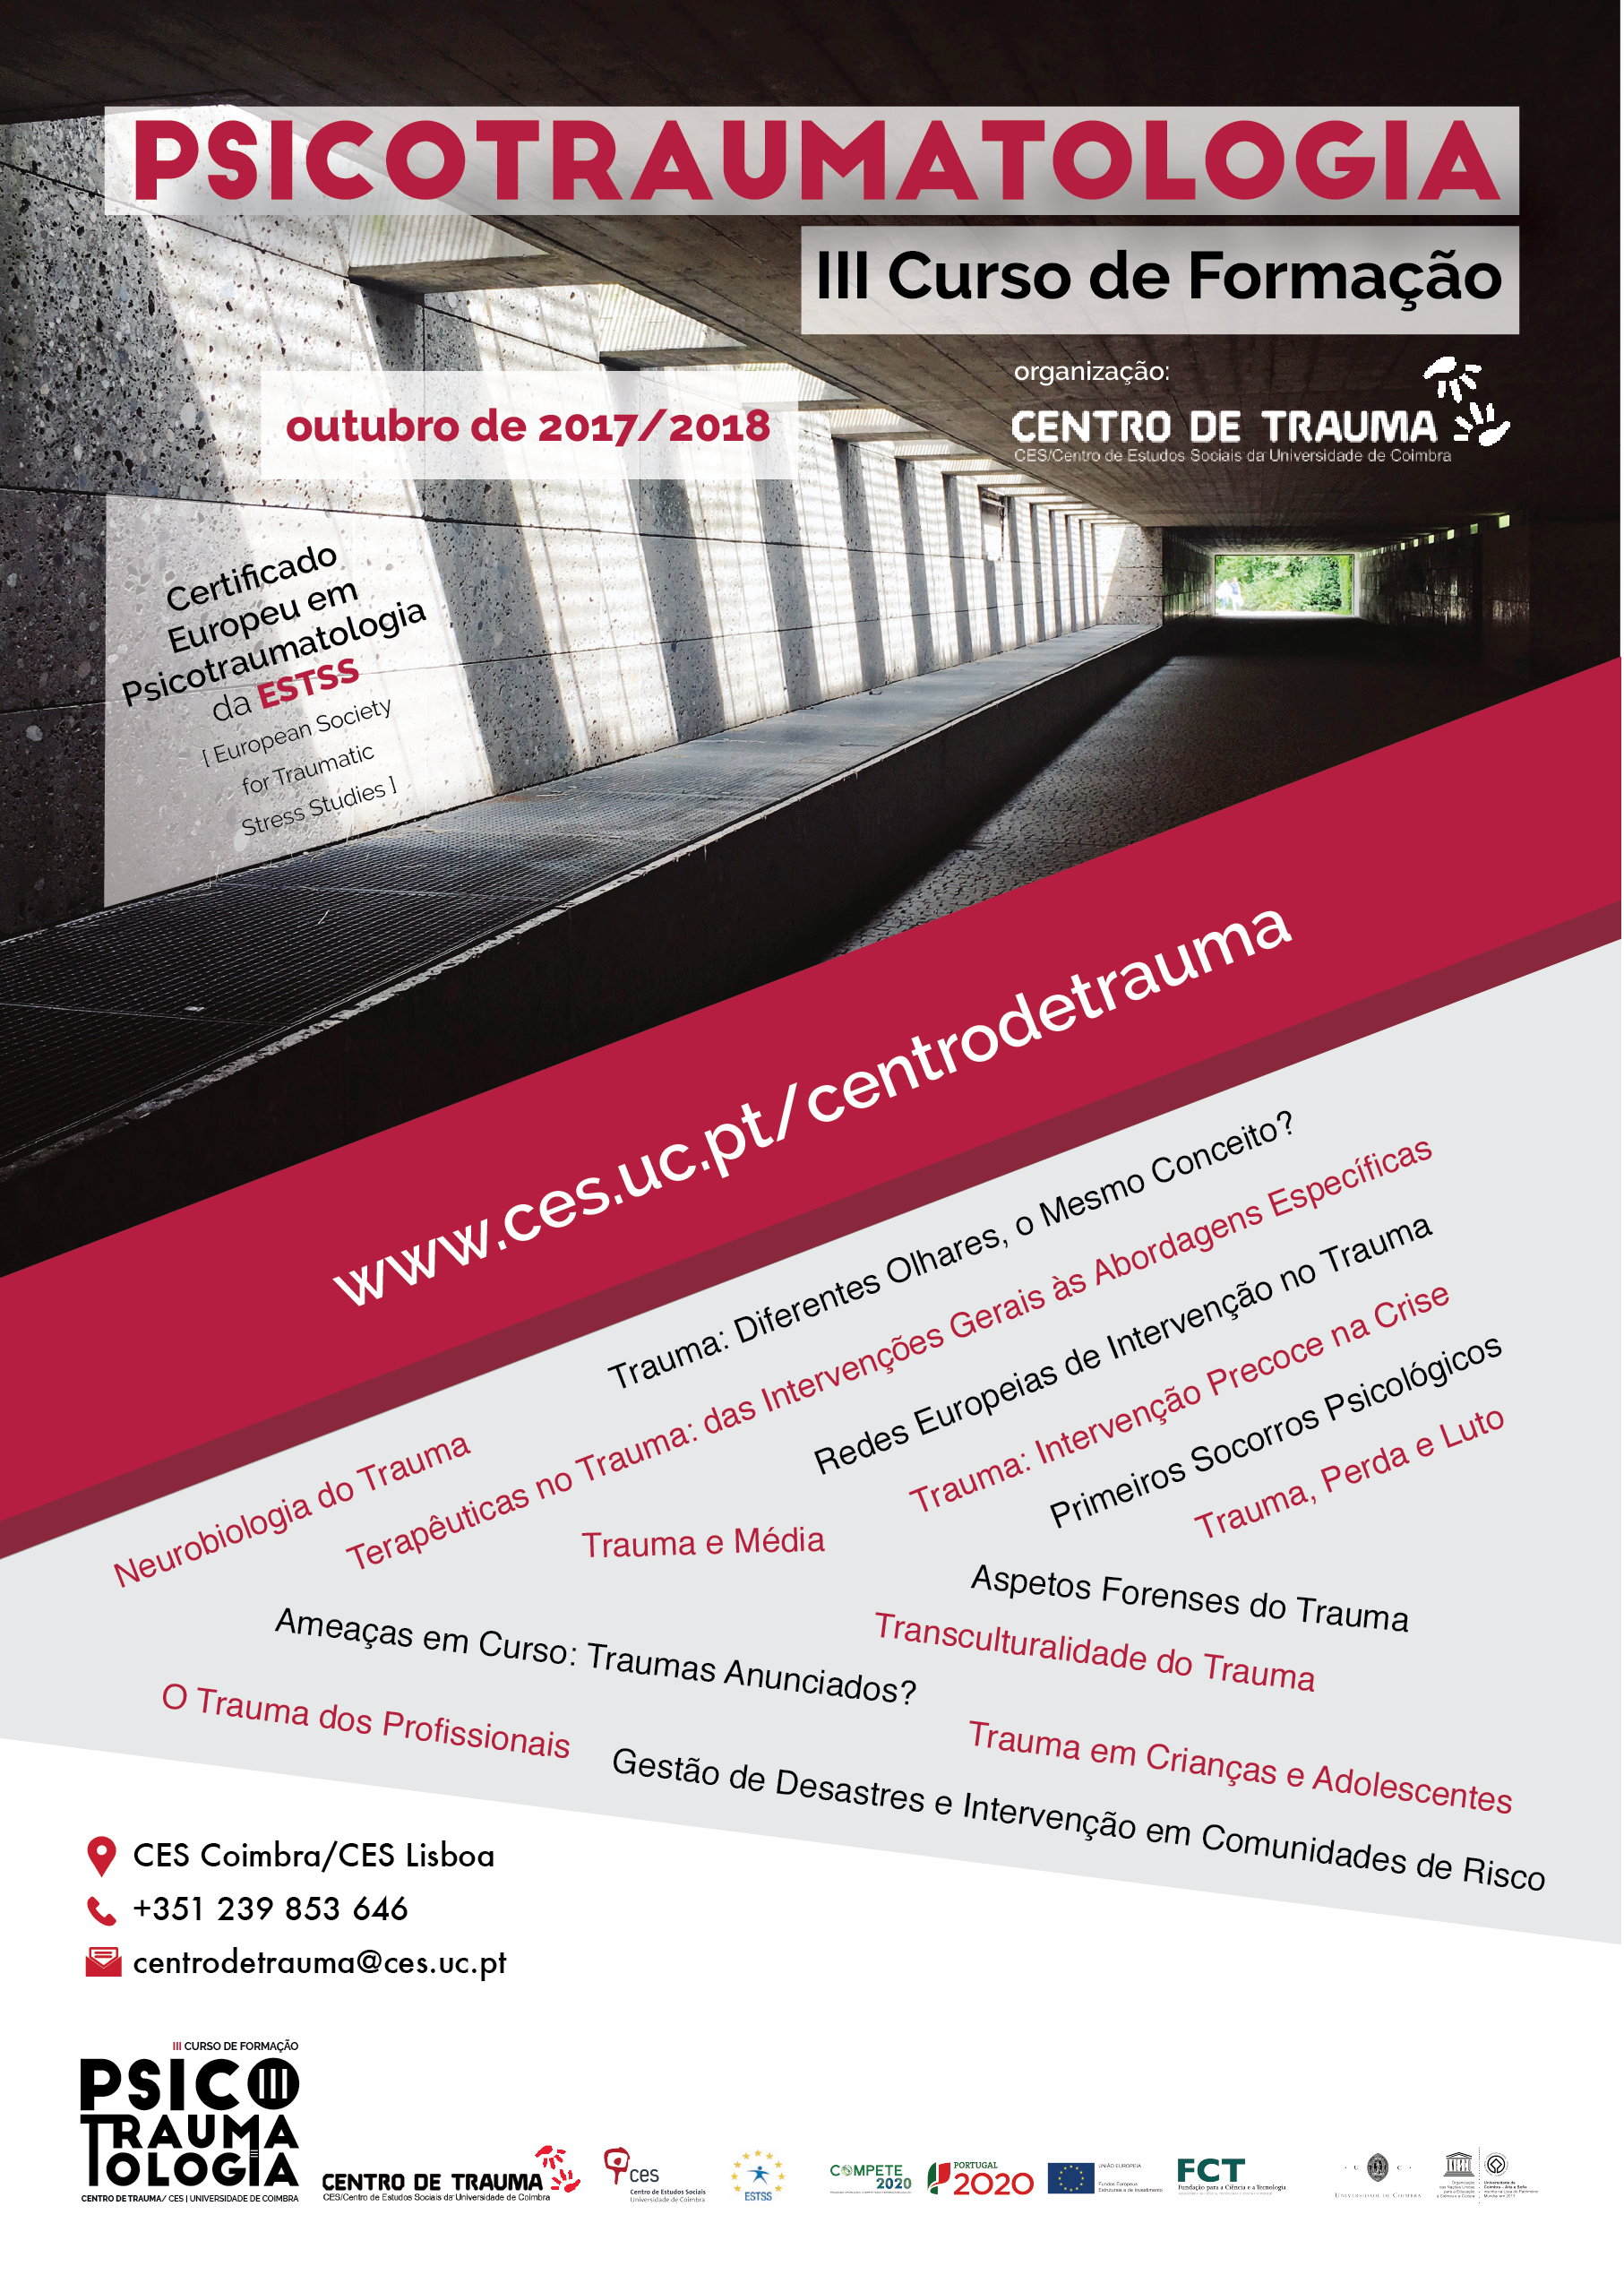 "III Course on Psychotraumatology of the Trauma Centre/CES<span id=""edit_17824""><script>$(function() { $('#edit_17824').load( ""/myces/user/editobj.php?tipo=evento&id=17824"" ); });</script></span>"